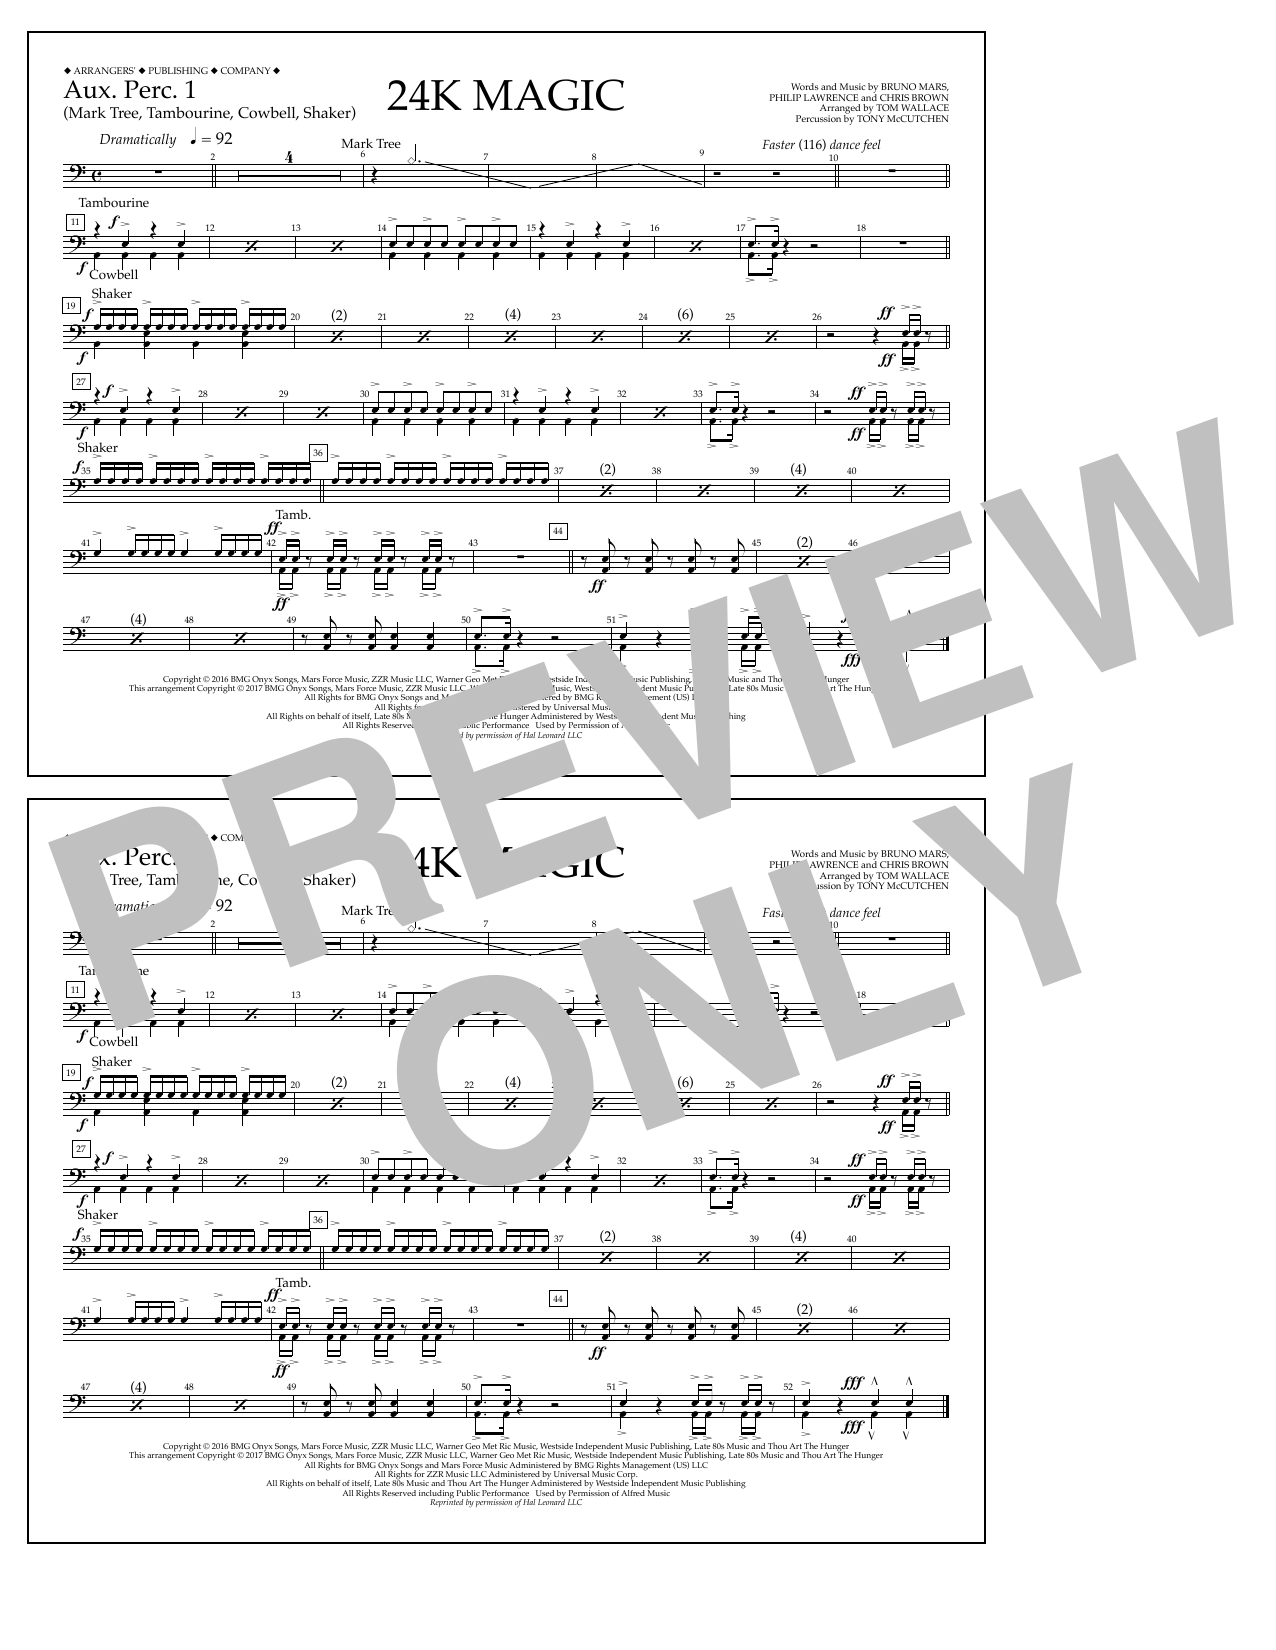 Tom Wallace 24K Magic - Aux. Perc. 1 sheet music preview music notes and score for Marching Band including 1 page(s)